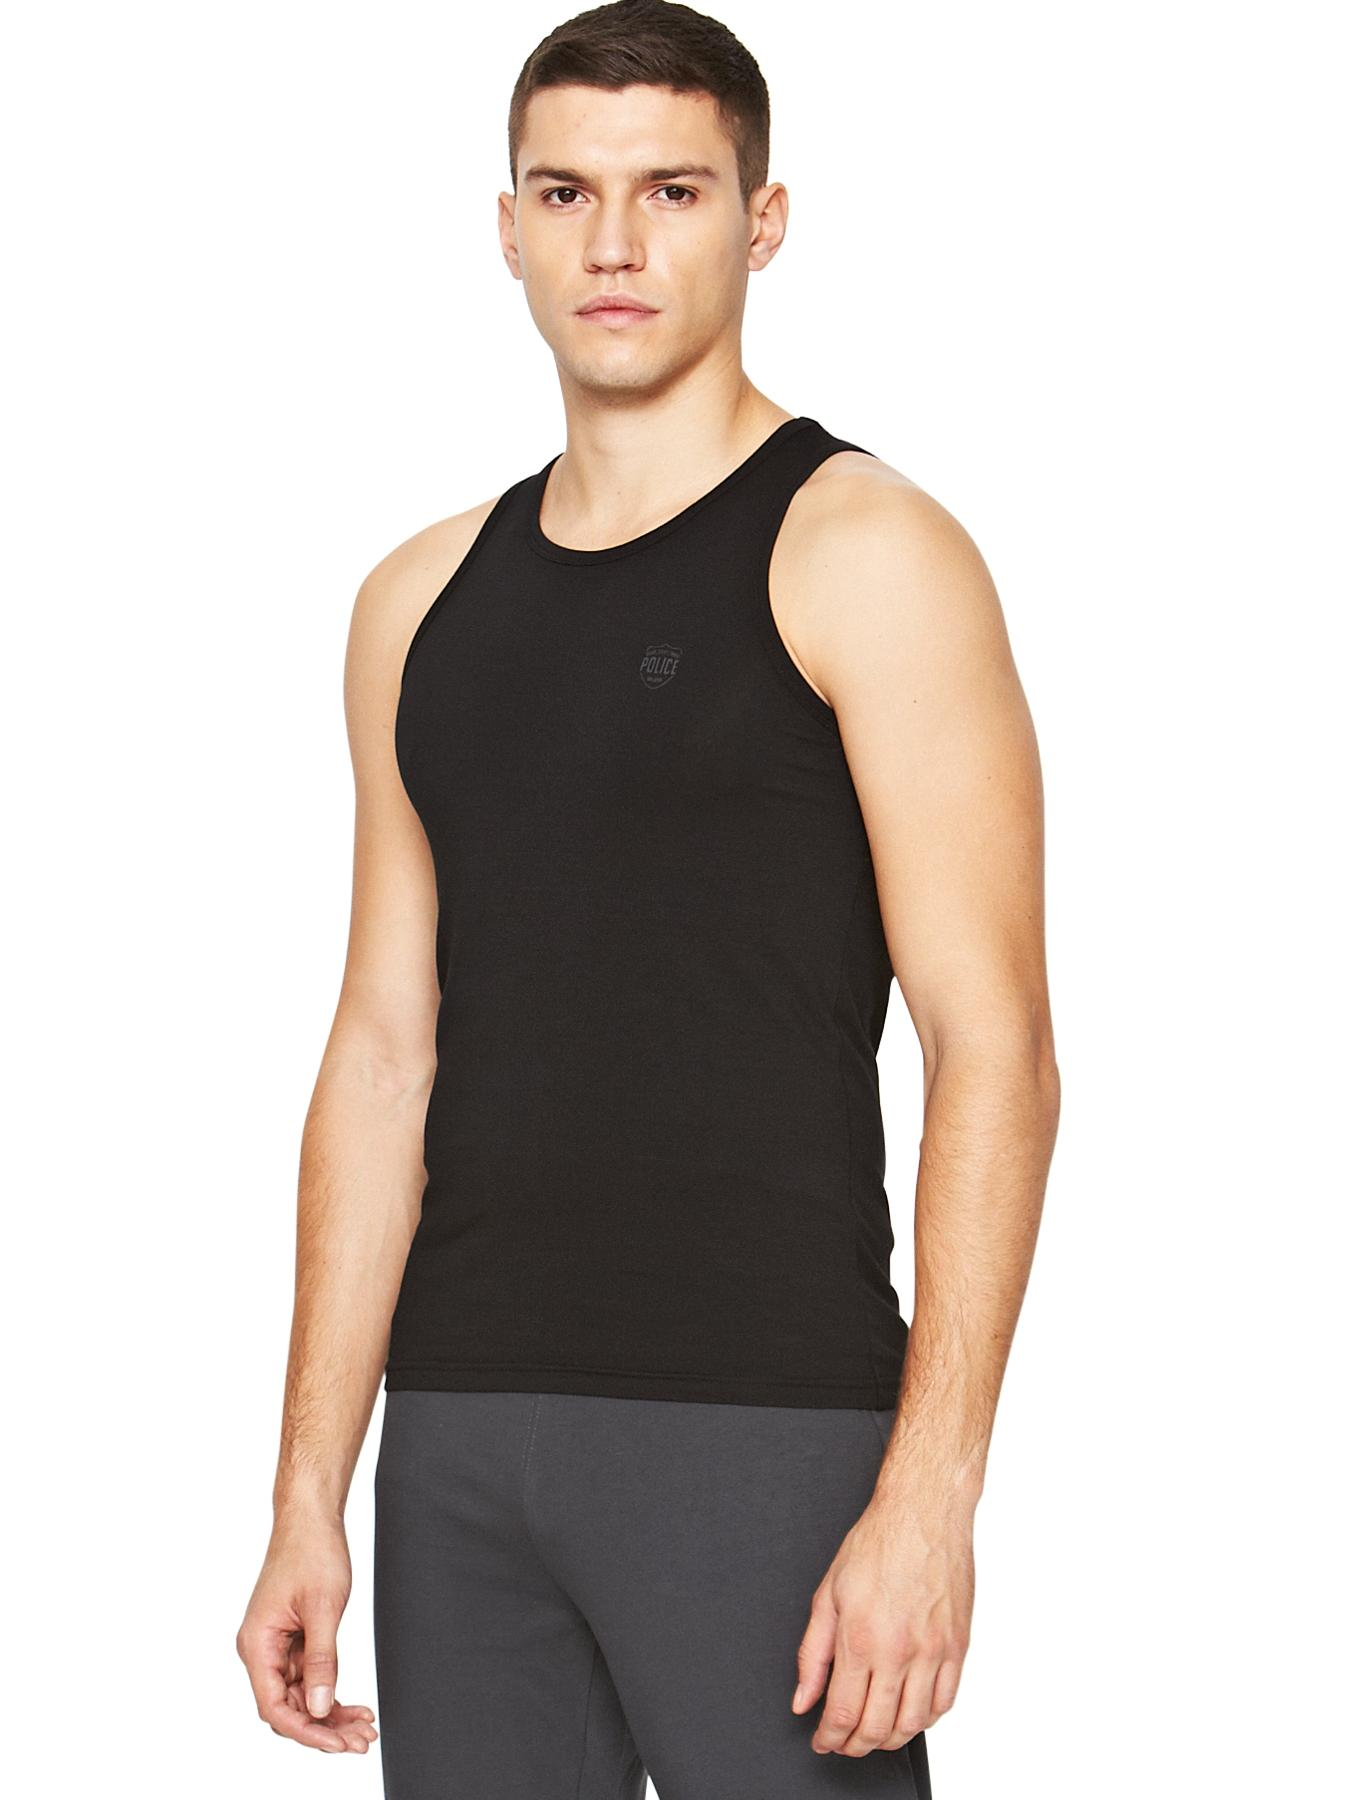 Mens Logo Single Vest, Black,White,Grey